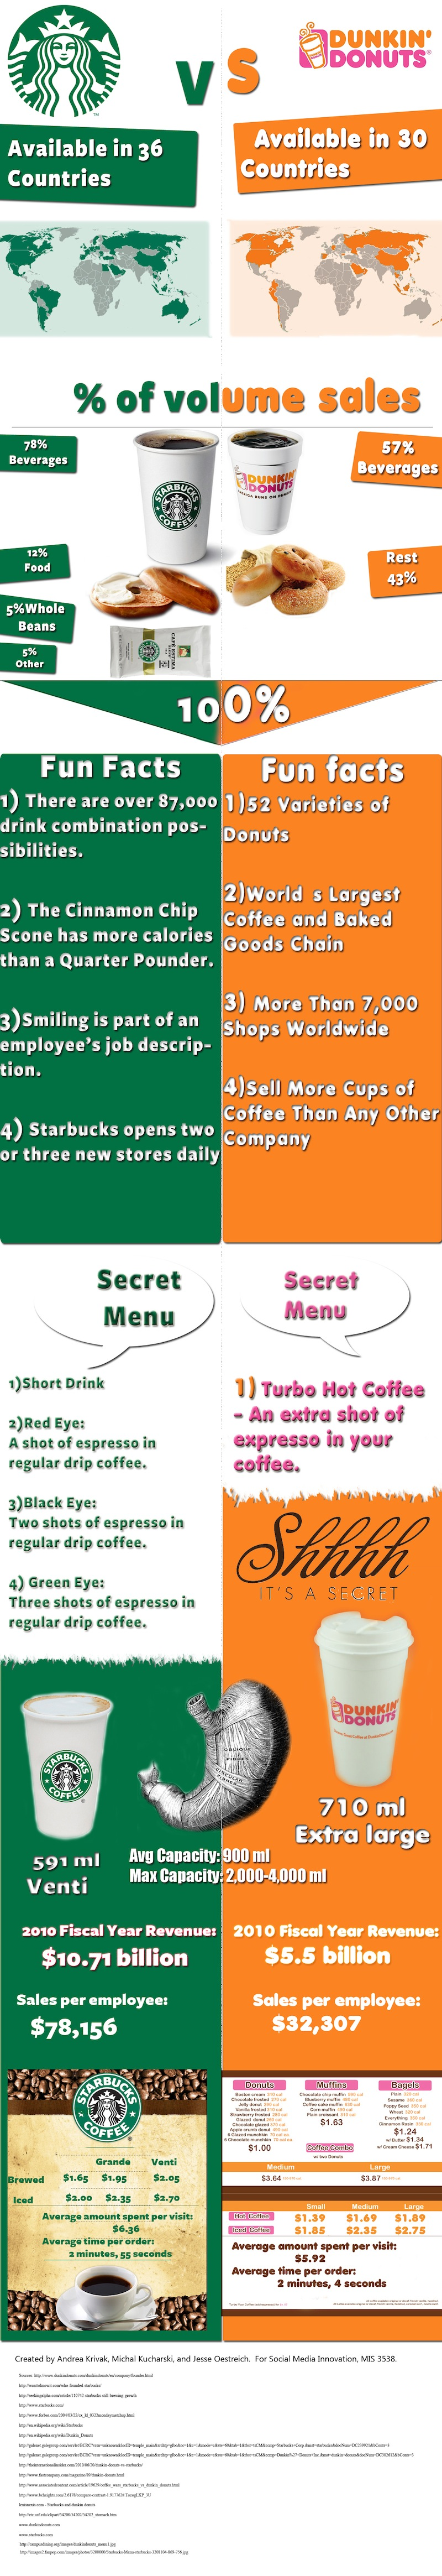 dunkin donuts vs starbucks essay The purpose of this assignment is to understand the role of segmentation, target, and positioning in the marketing from cases of starbucks and dunkin donuts this.